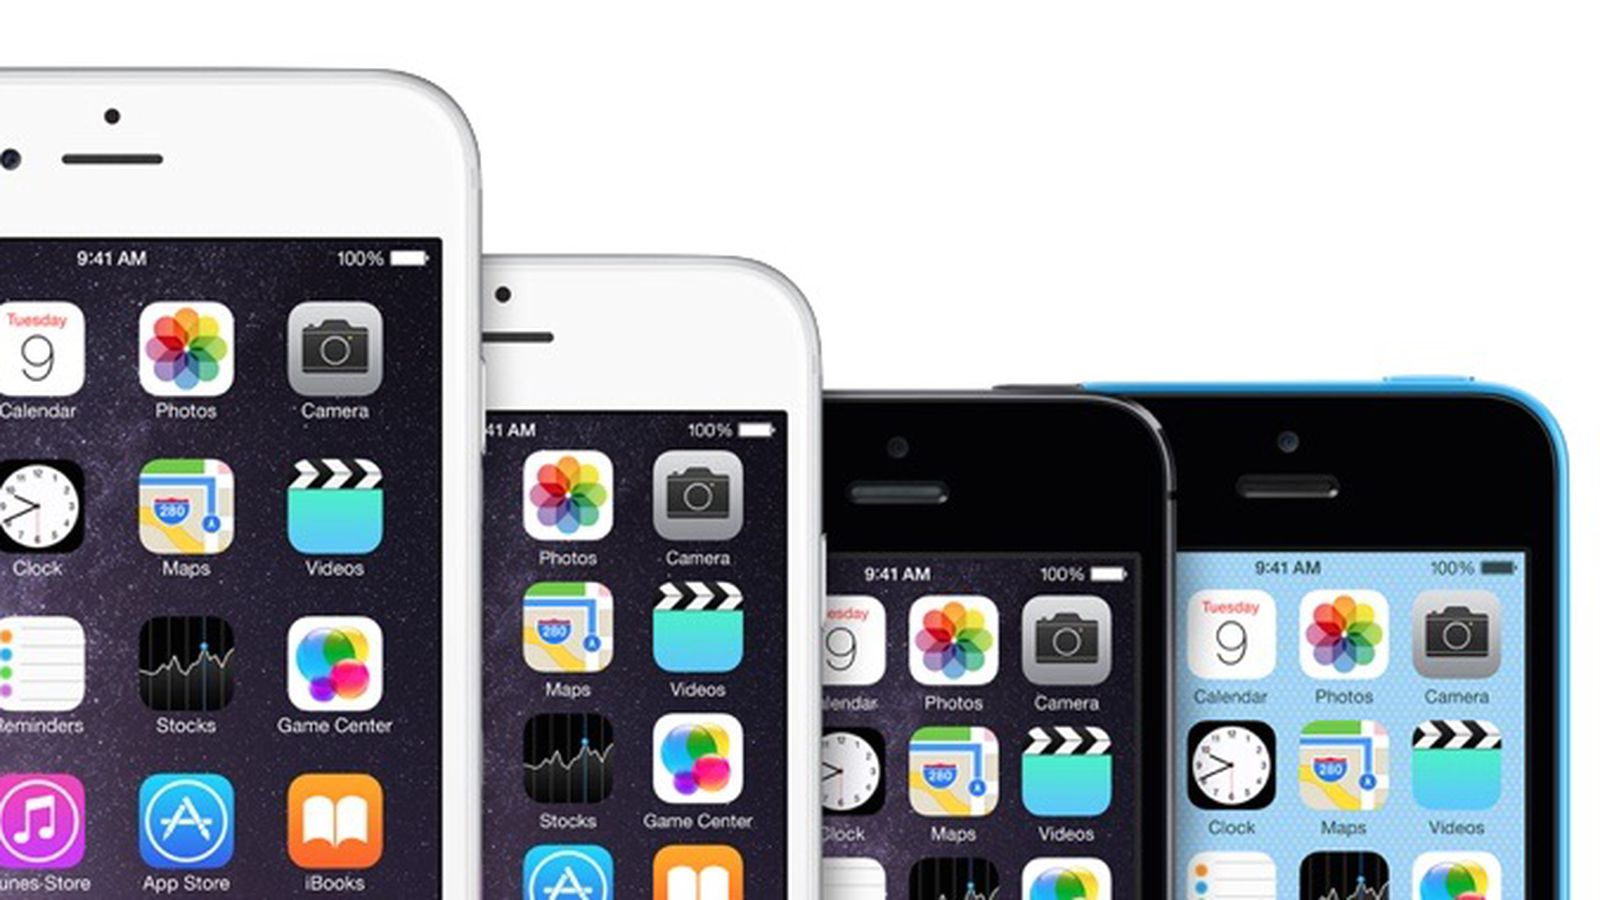 How to Get the Best Resale Price for Your iPhone 6, 6 Plus or 5s - MacRumors